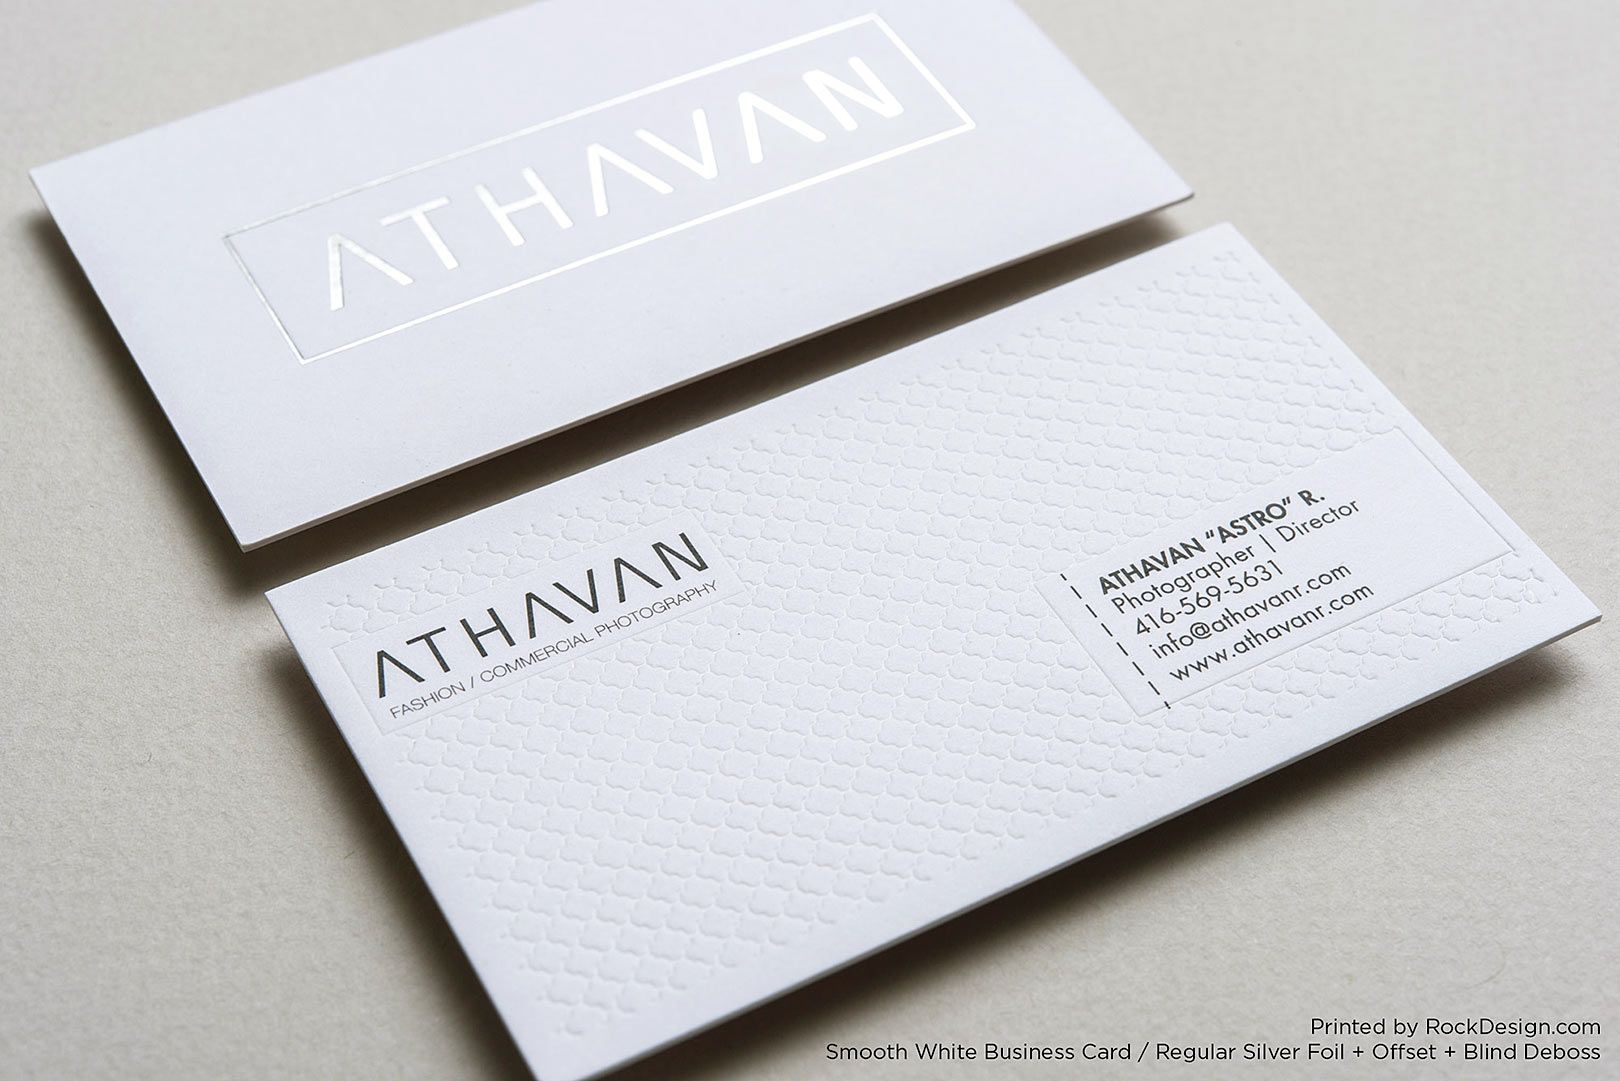 Pin by Lê Huyền on NameCard | Pinterest | Business cards and Logos